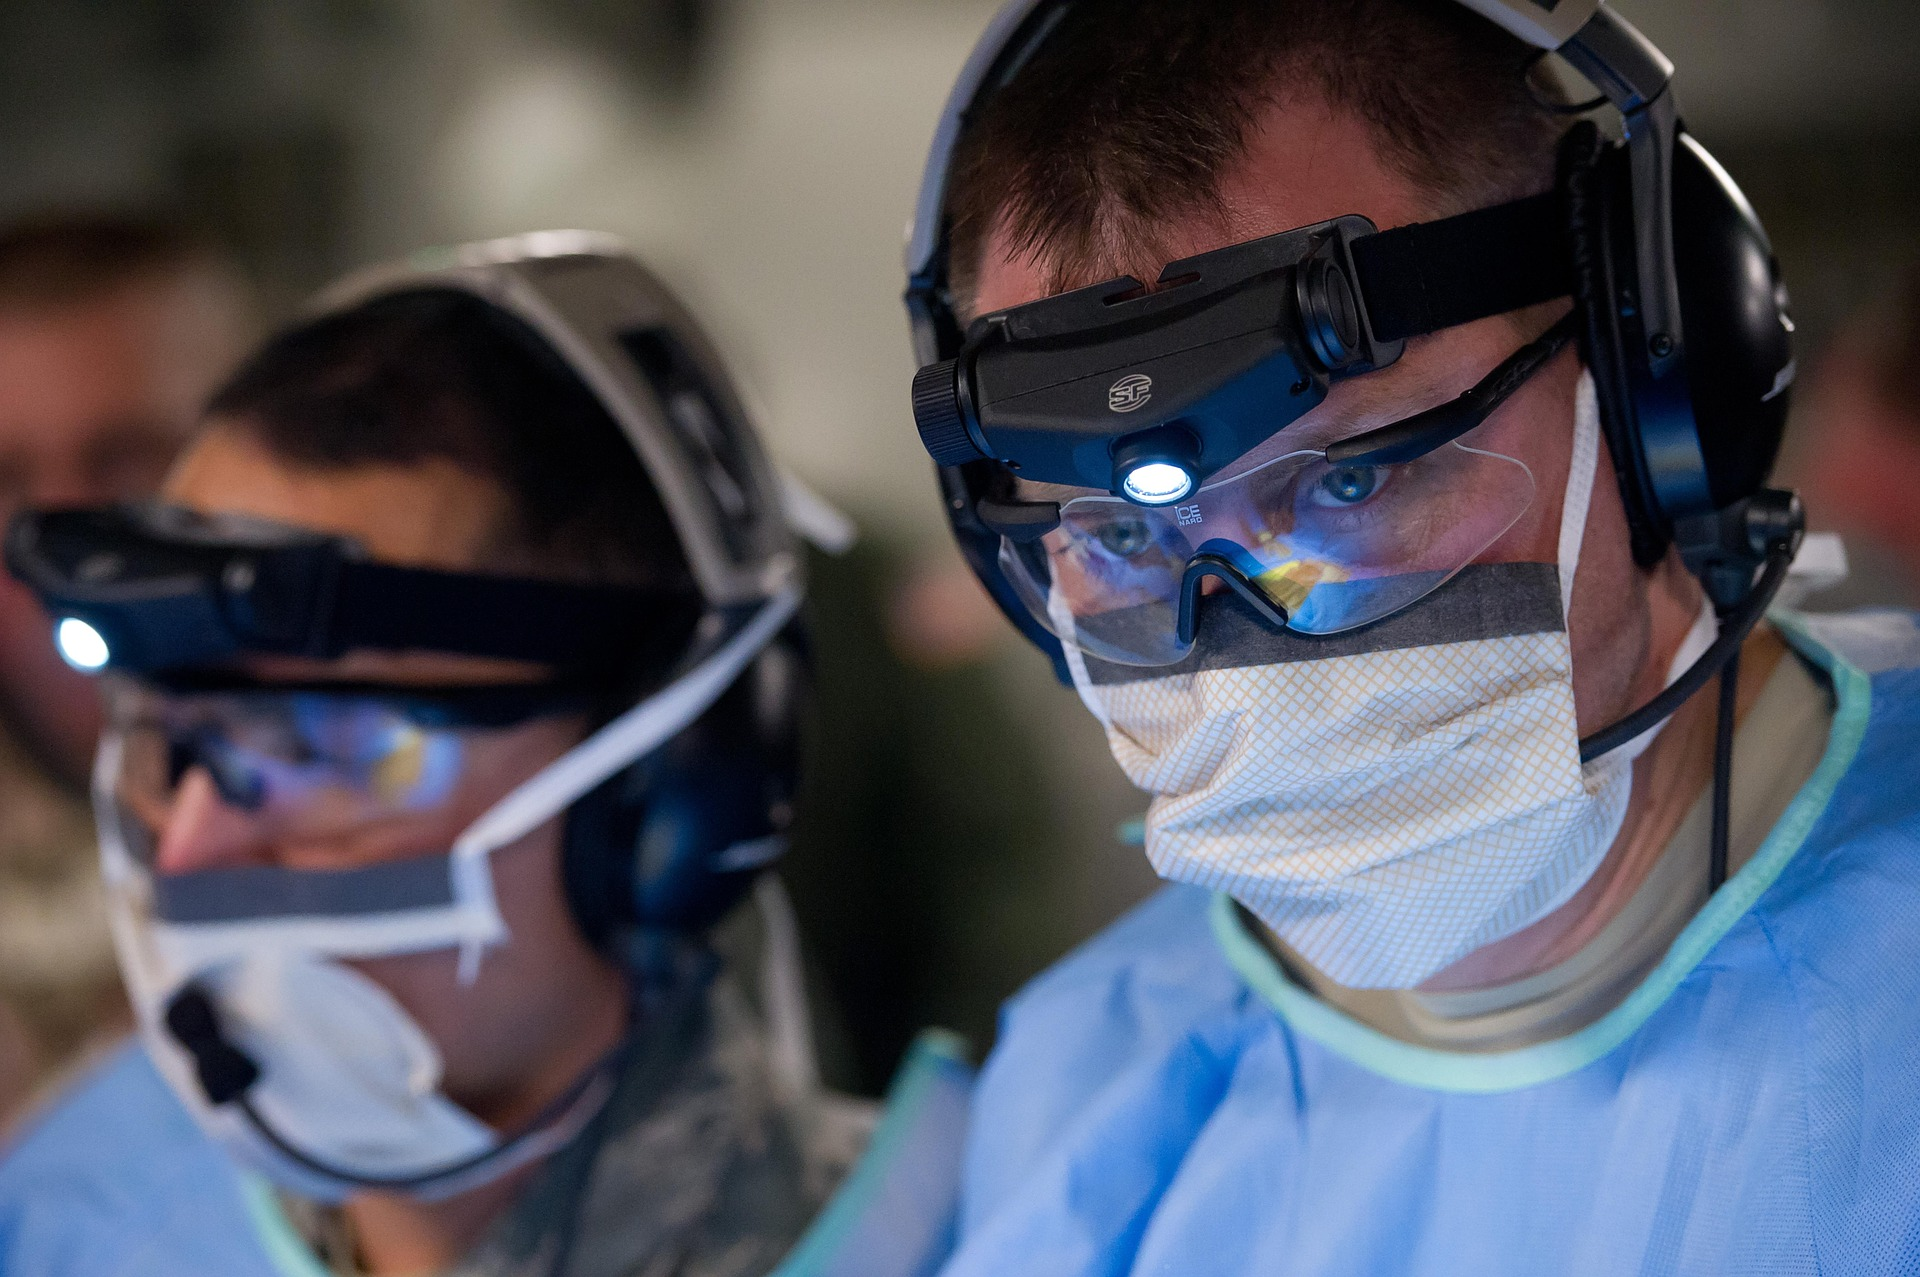 The Top 8 Allied Health Careers According to Uncle Sam